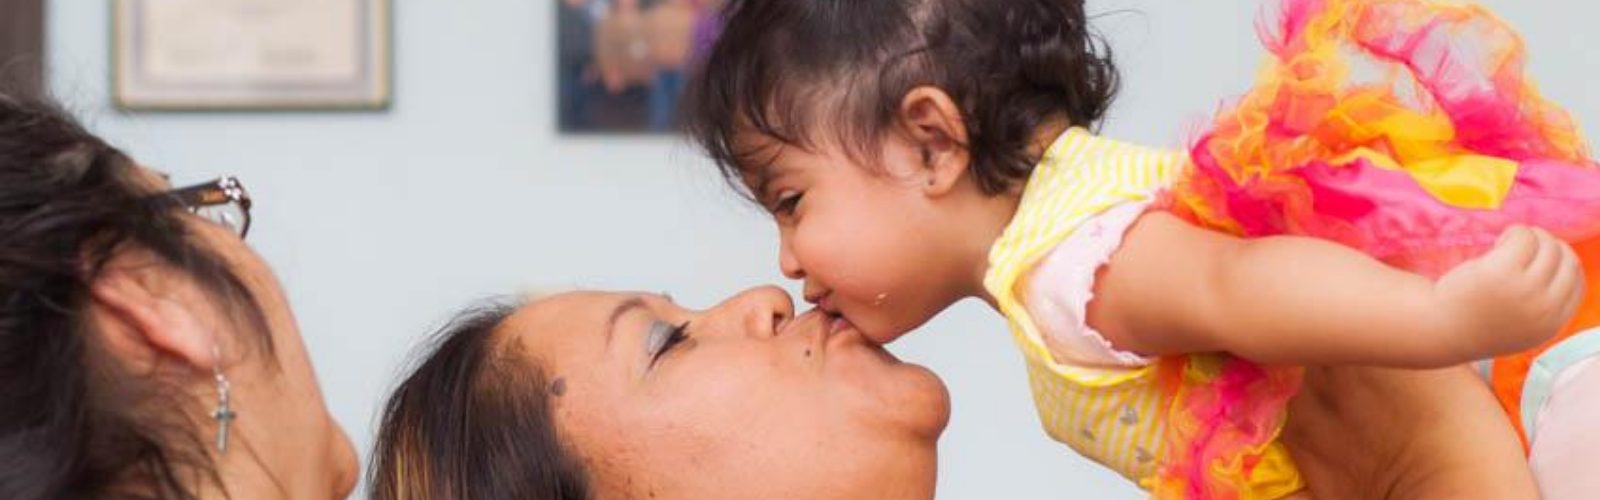 woman kissing a baby in the air while a doula looks on